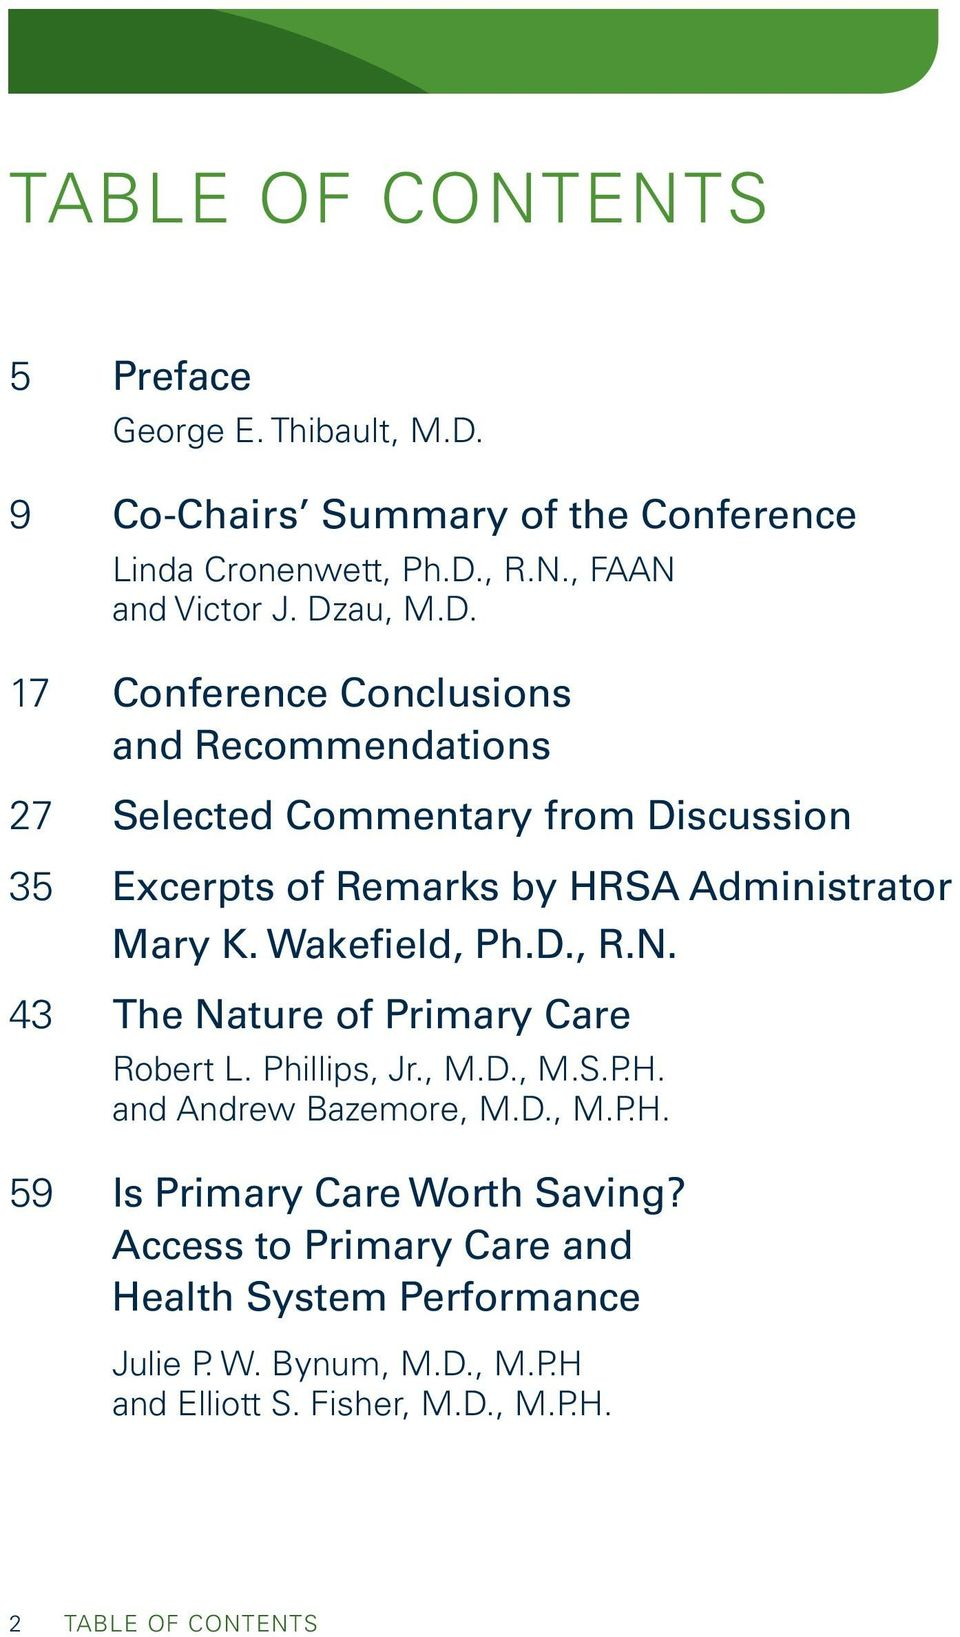 Wakefield, Ph.D., R.N. 43 The Nature of Primary Care Robert L. Phillips, Jr., M.D., M.S.P.H. and Andrew Bazemore, M.D., M.P.H. 59 Is Primary Care Worth Saving?